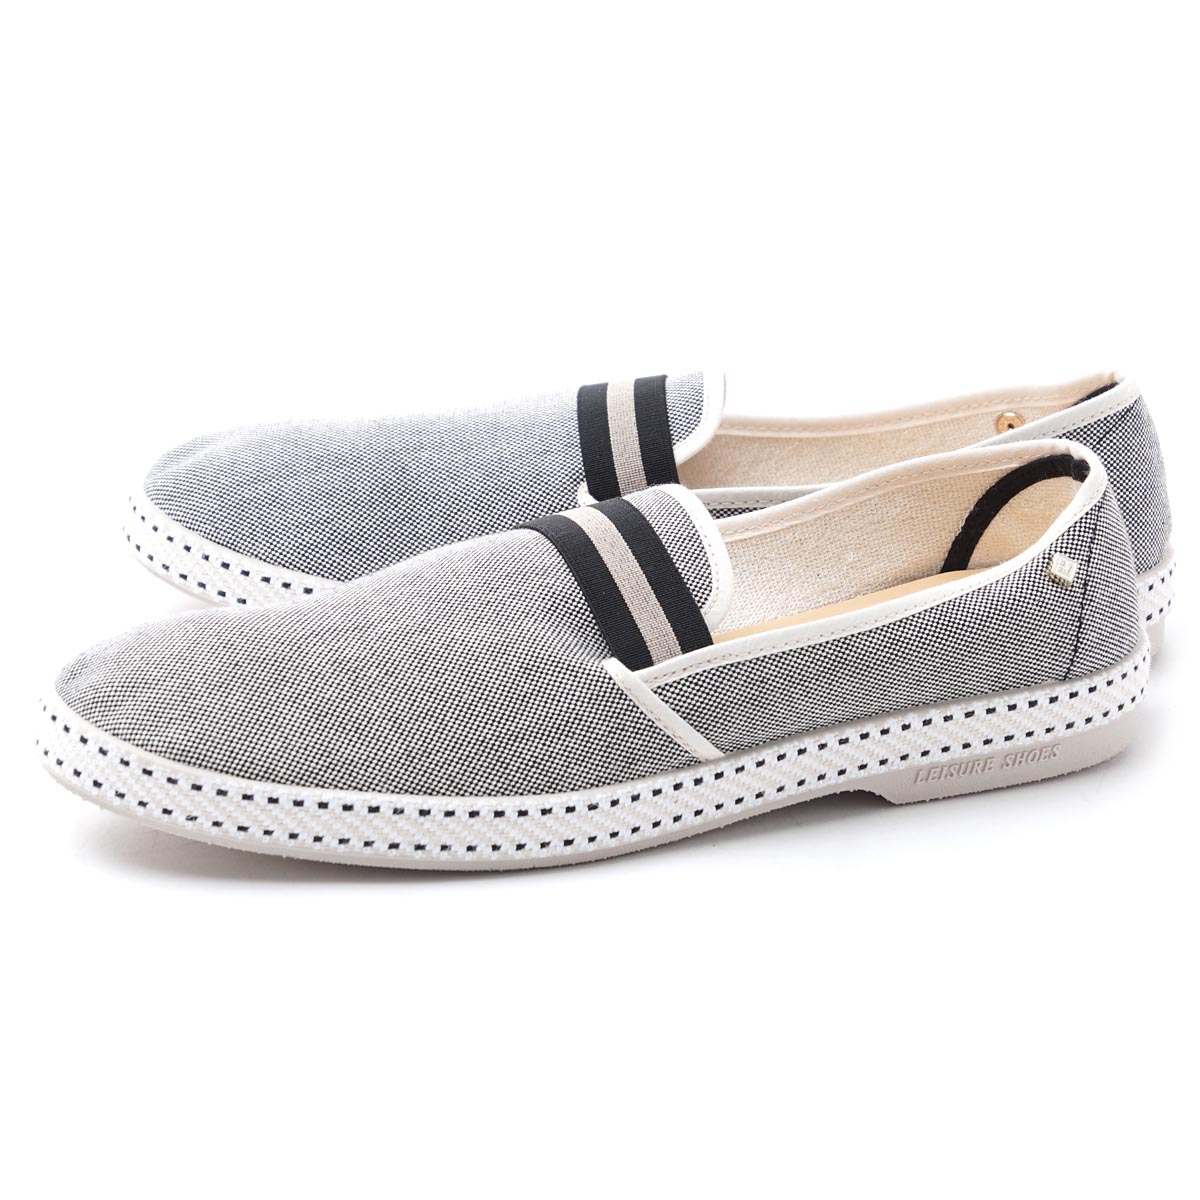 Riviera Rivieras slip on shoes espadrille COLLEGE college YALE gray system college 1191 yale men